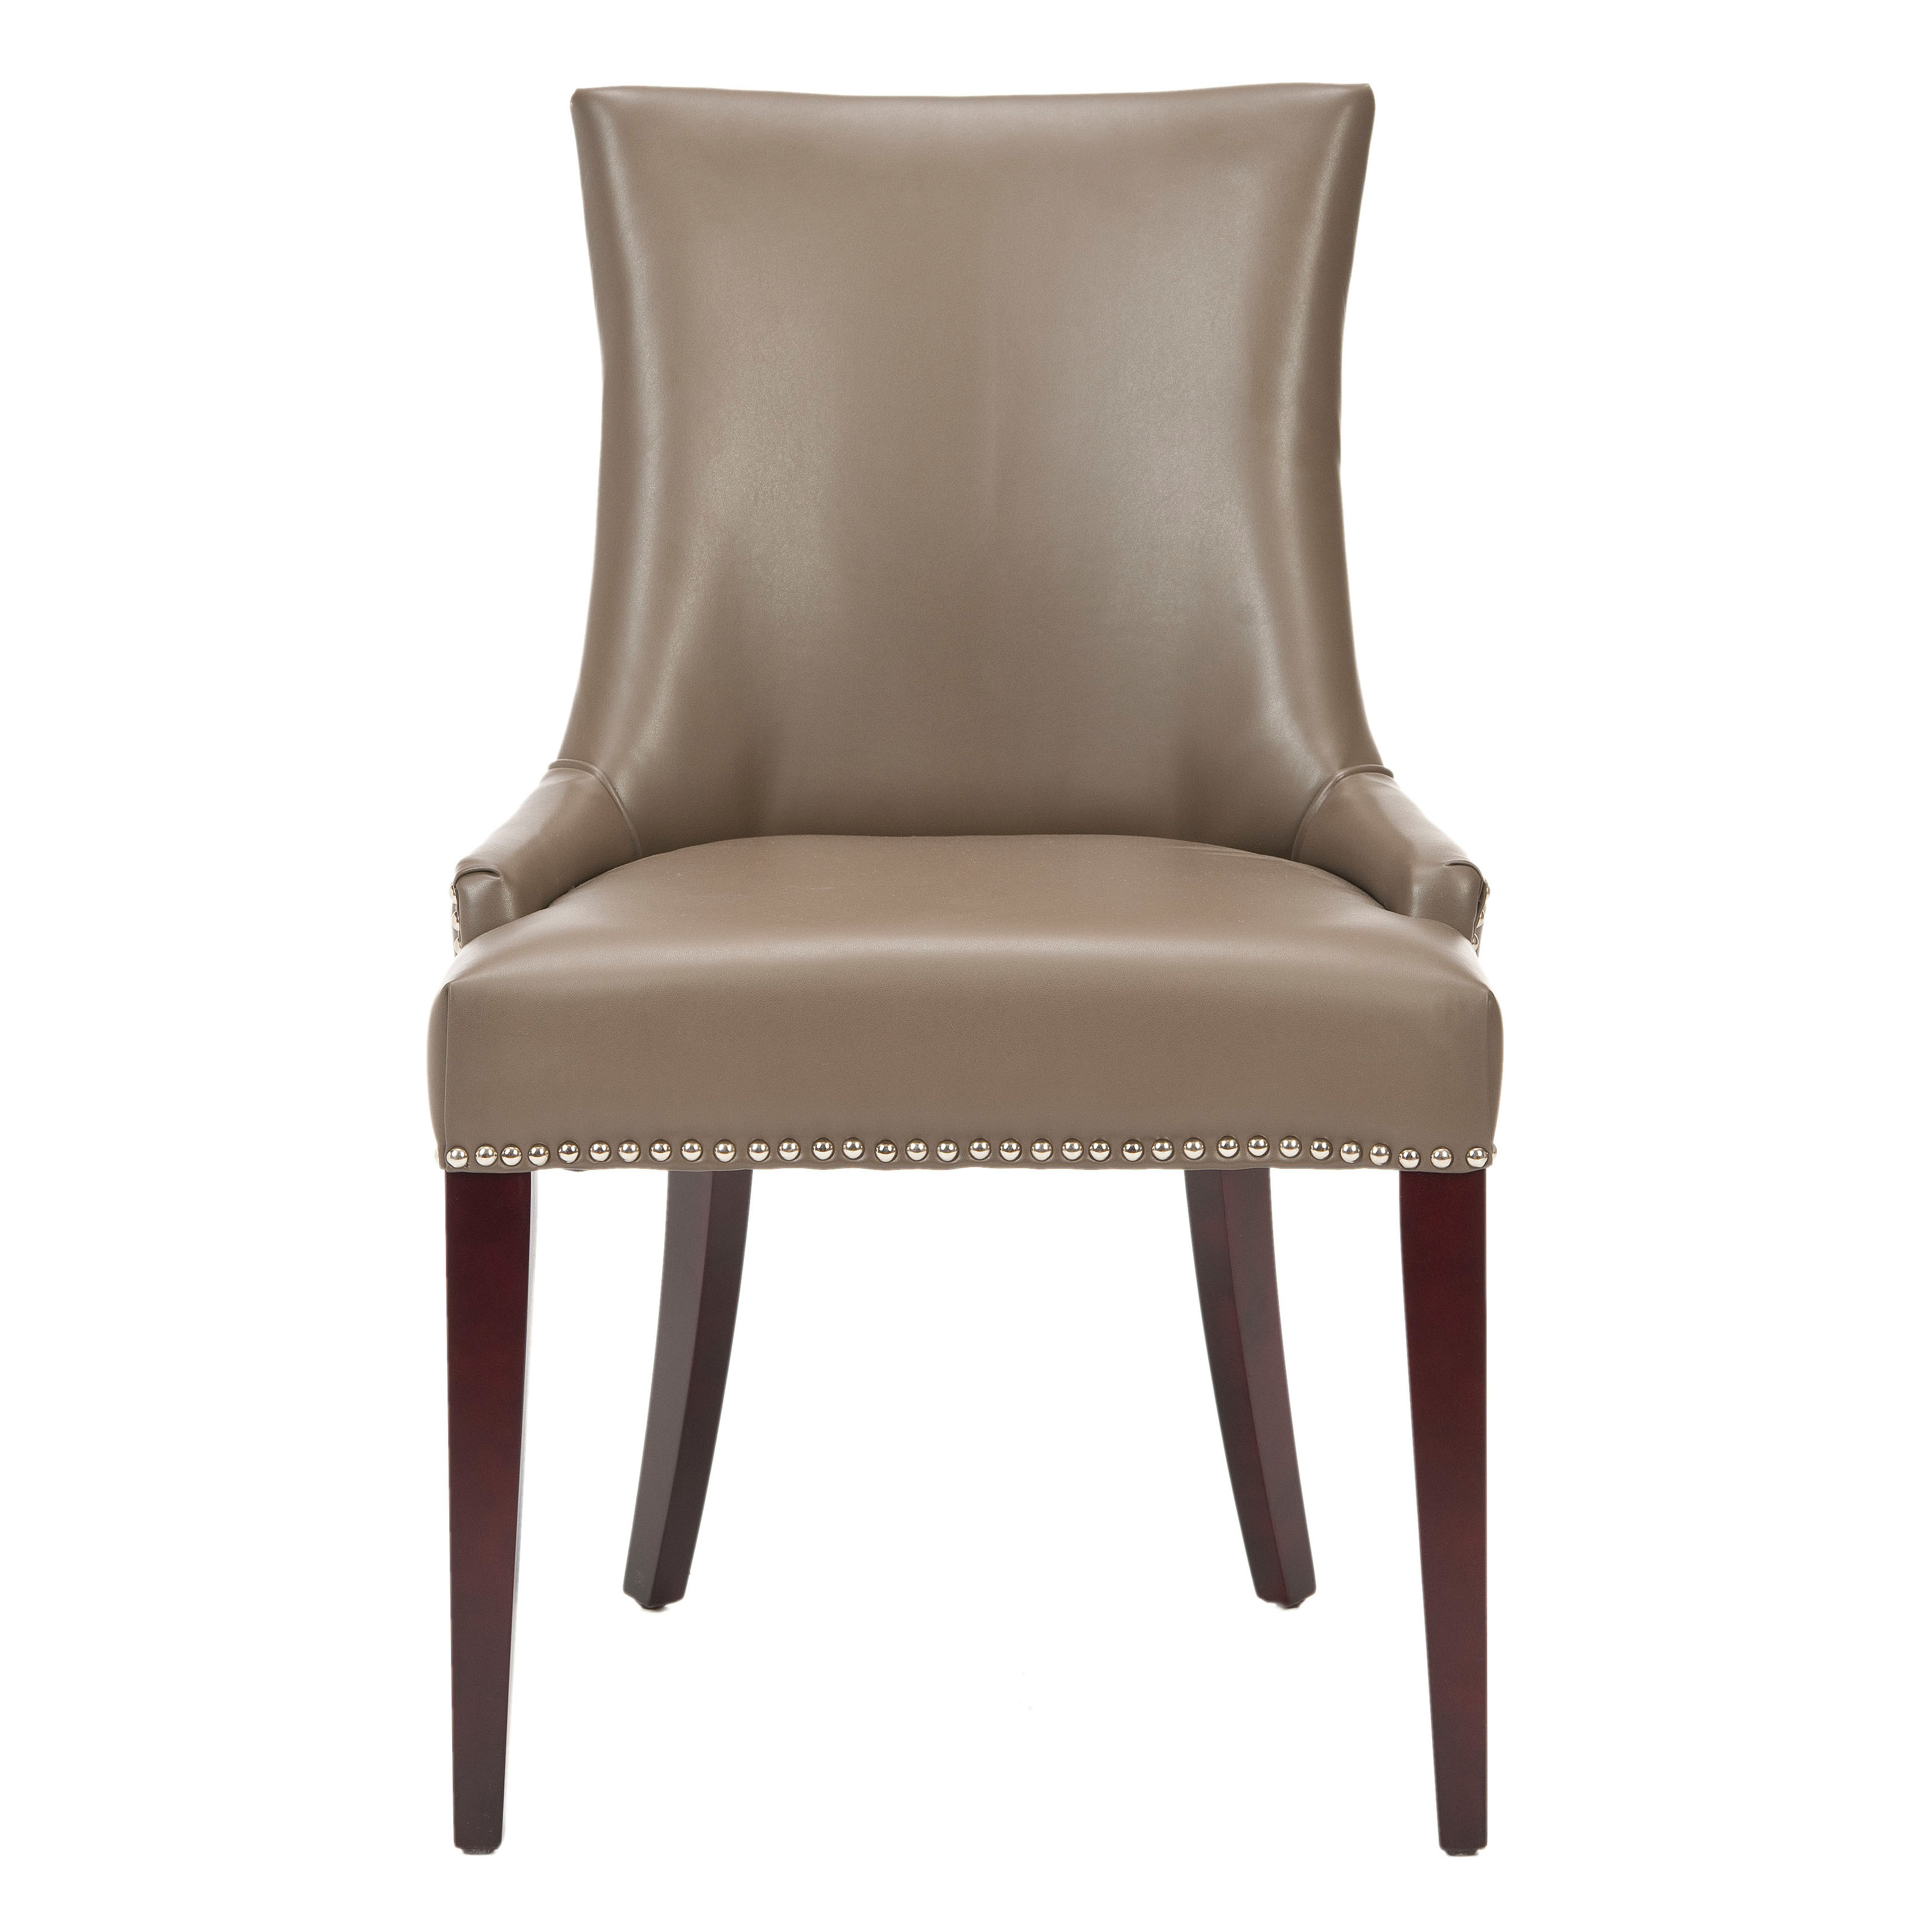 Grey Leather Dining Chair Safavieh Amelia Gray Chairs At Hayneedle